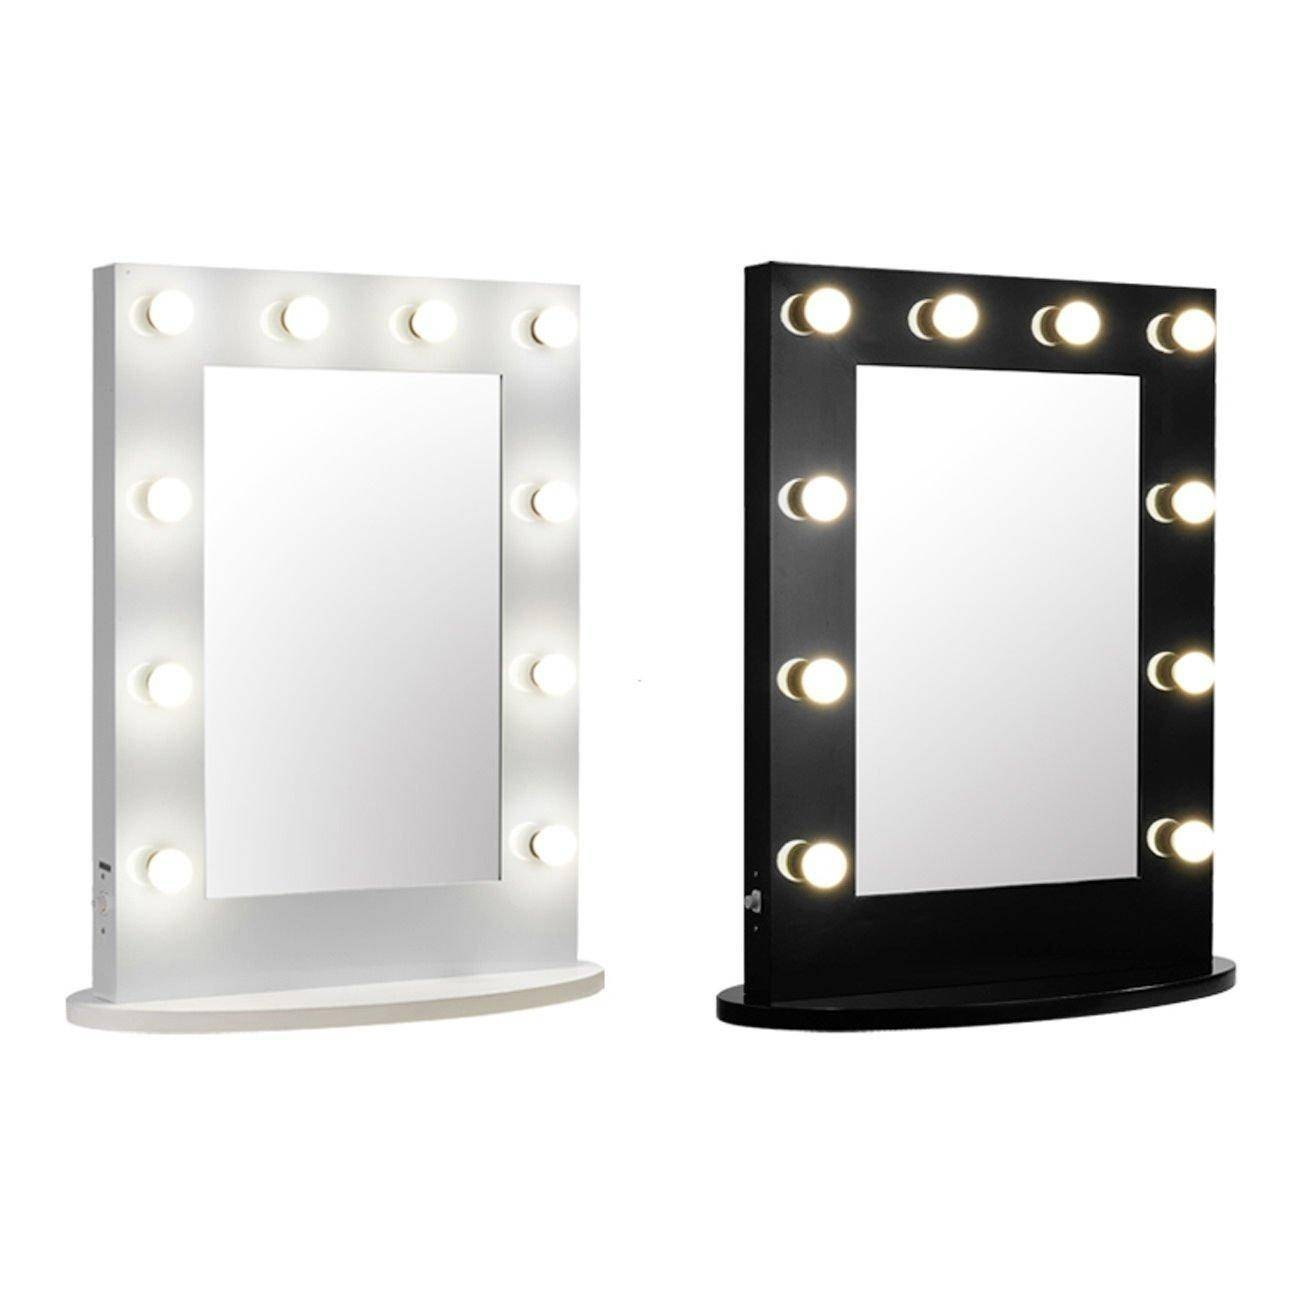 Top 10 Wall Lighted Makeup Mirror 2017 | Warisan Lighting for Wall Light Mirrors (Image 9 of 15)